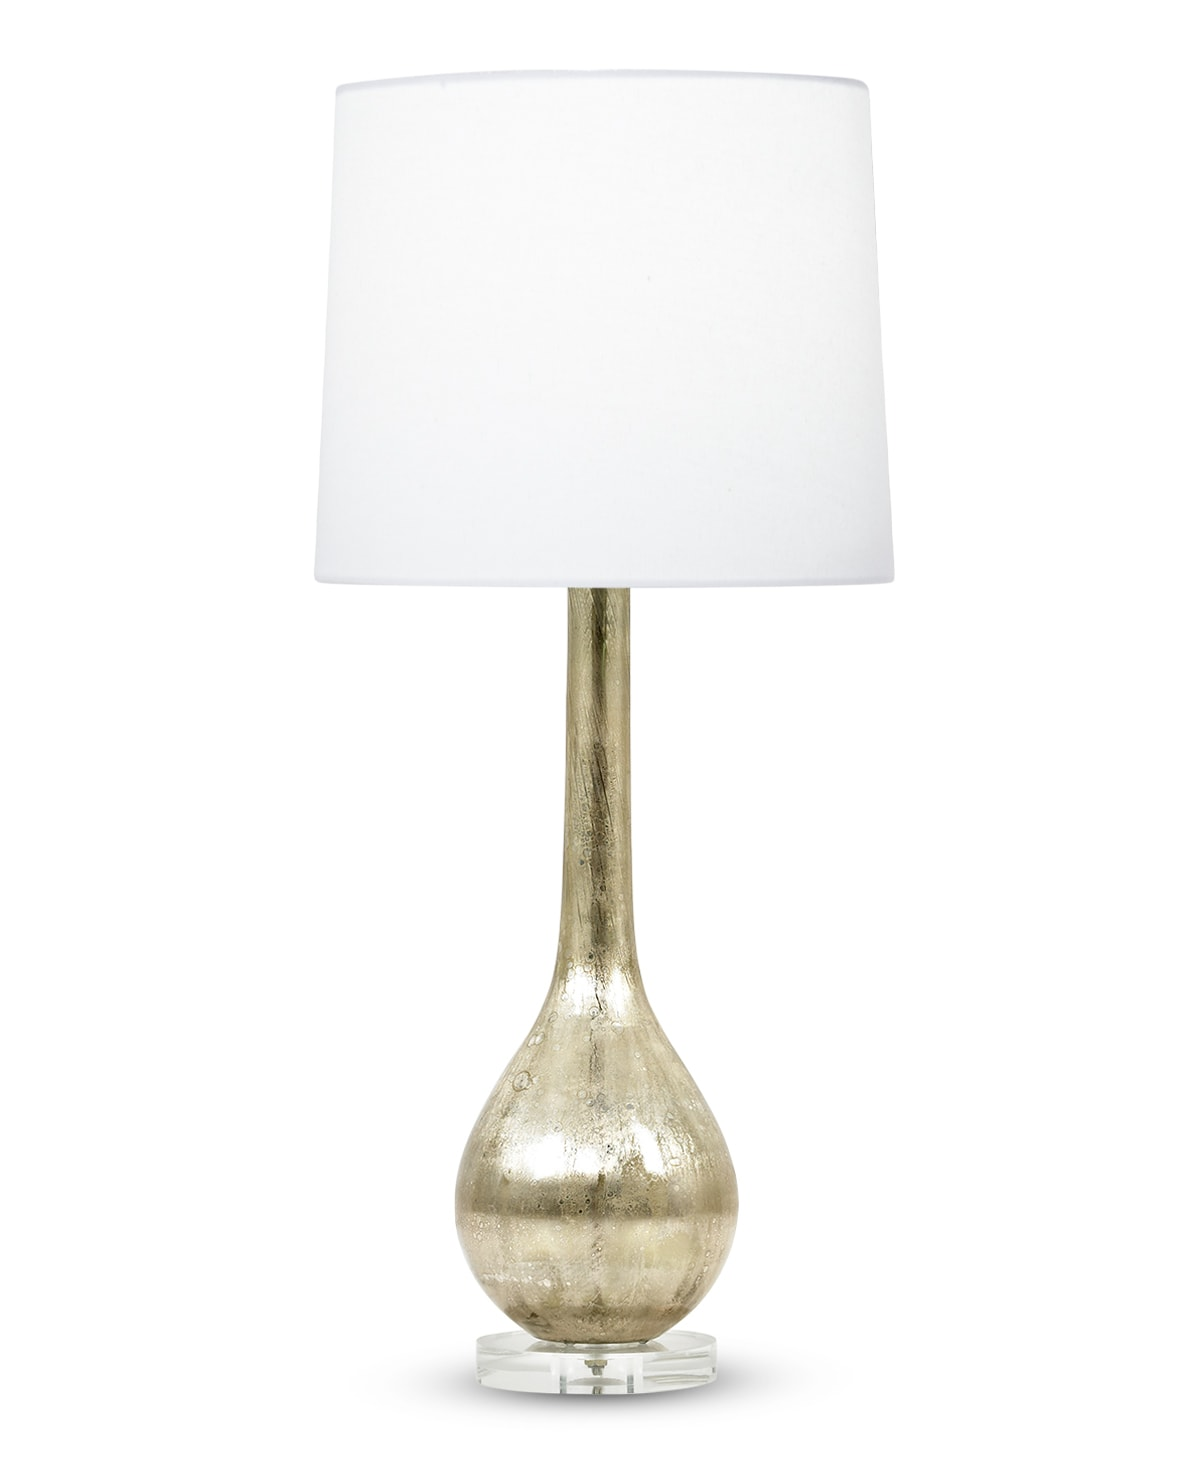 FlowDecor Rowan Table Lamp in mouth-blown glass with beige metallic finish and acrylic base and off-white cotton tapered drum shade (# 3803)